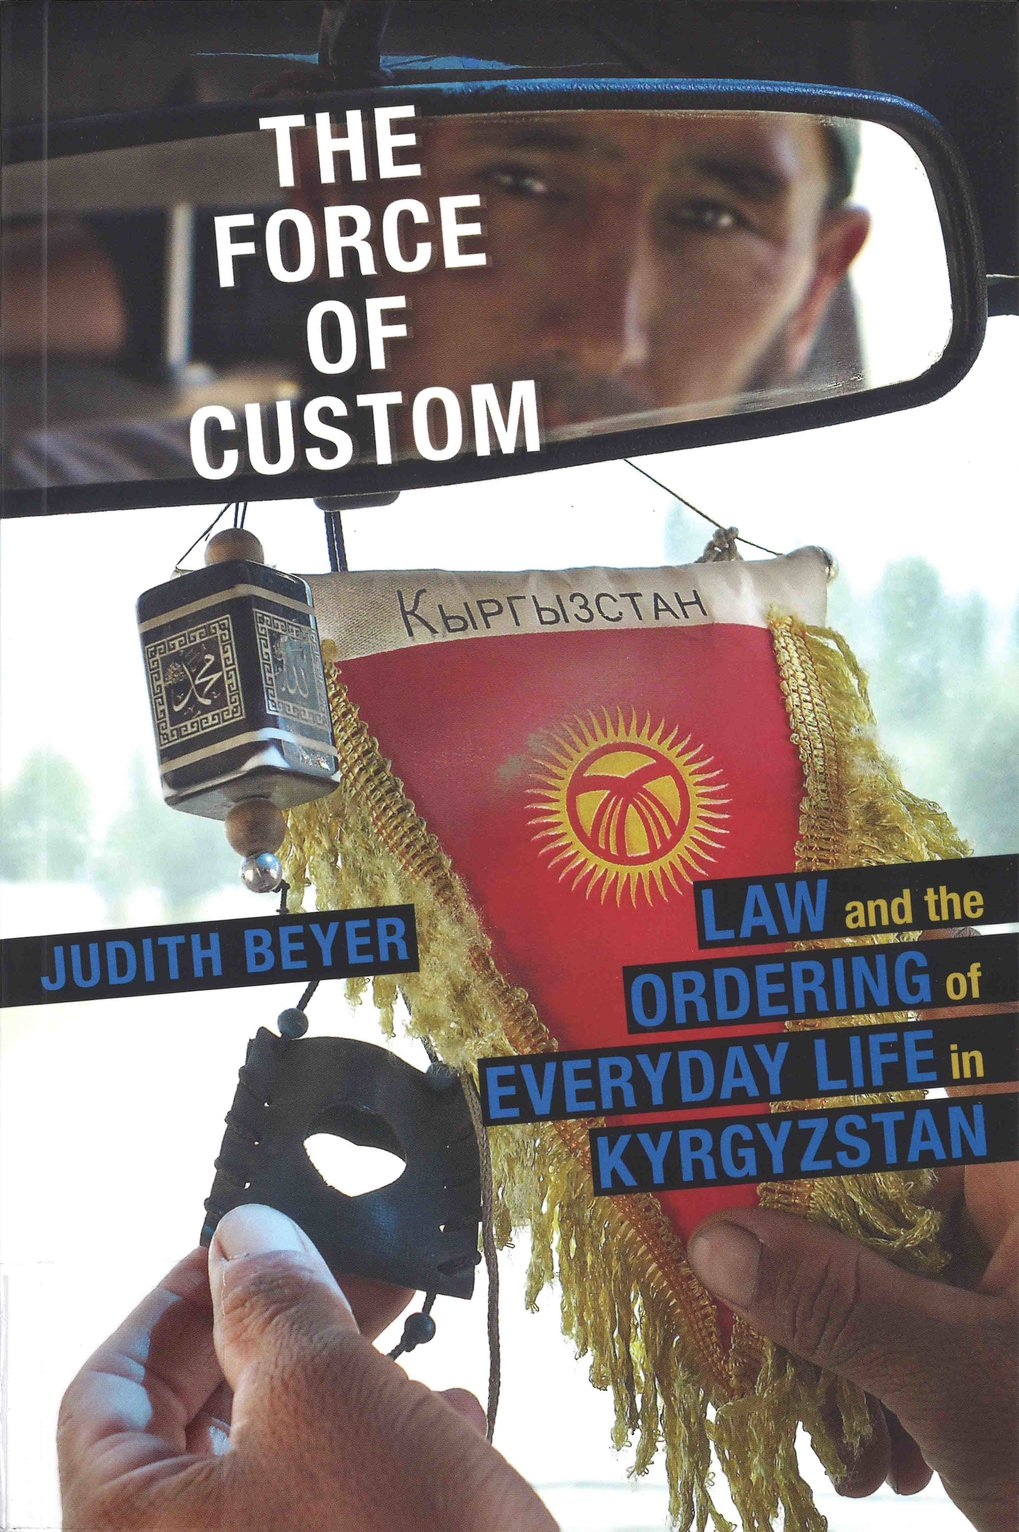 The Force of Custom: law and the ordering of everyday life in Kyrgyzstan